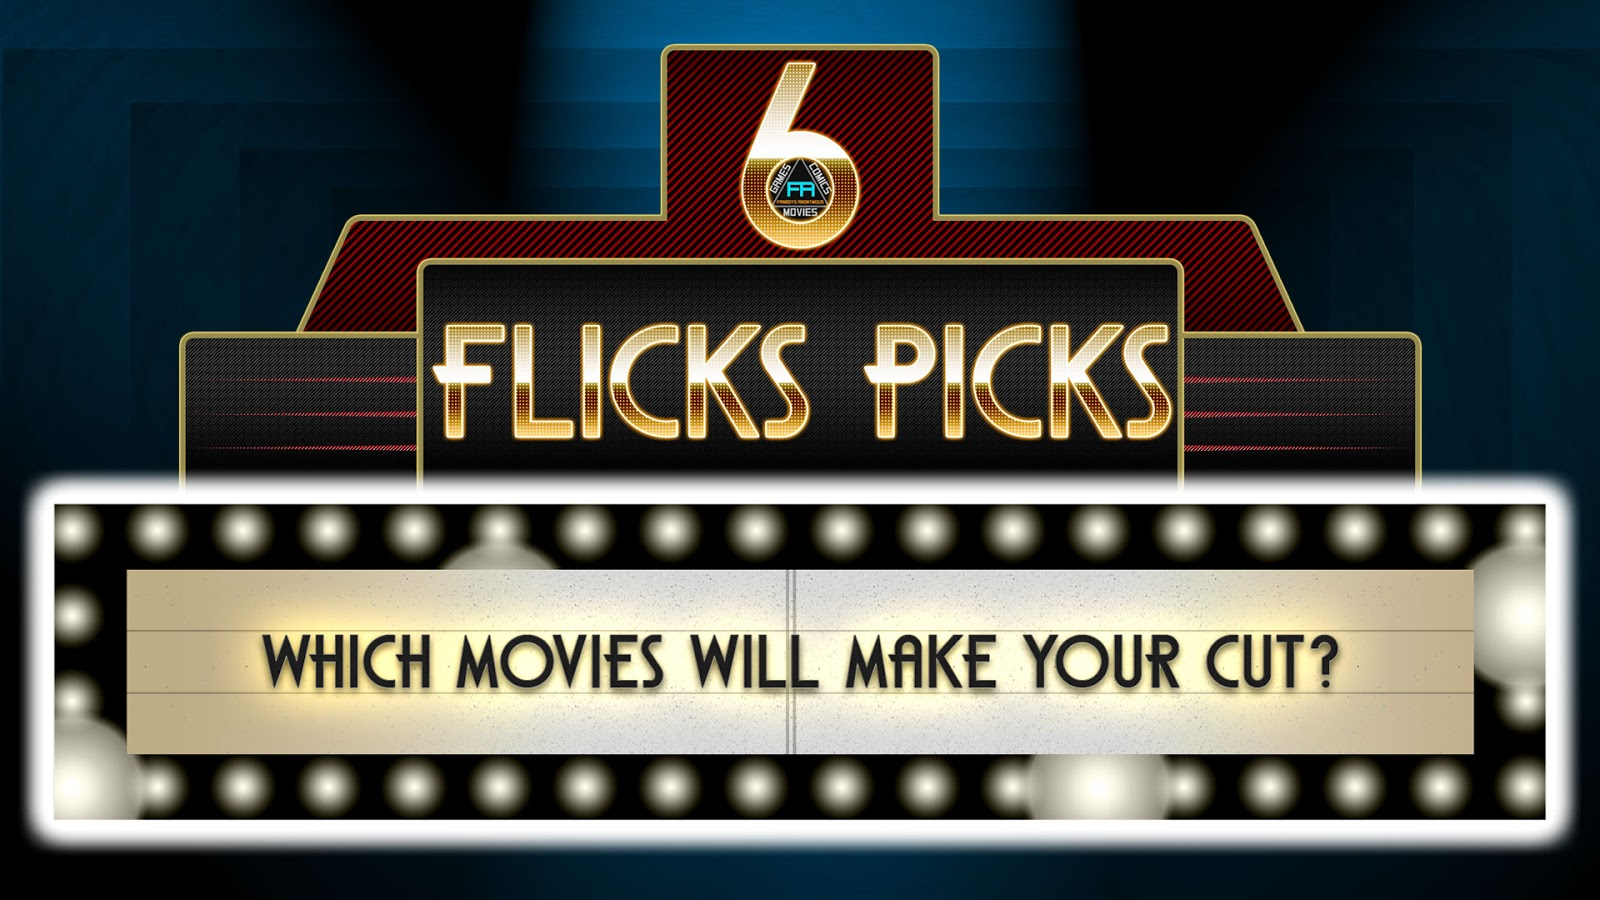 What movies are coming out July 2019 6 Flicks Picks